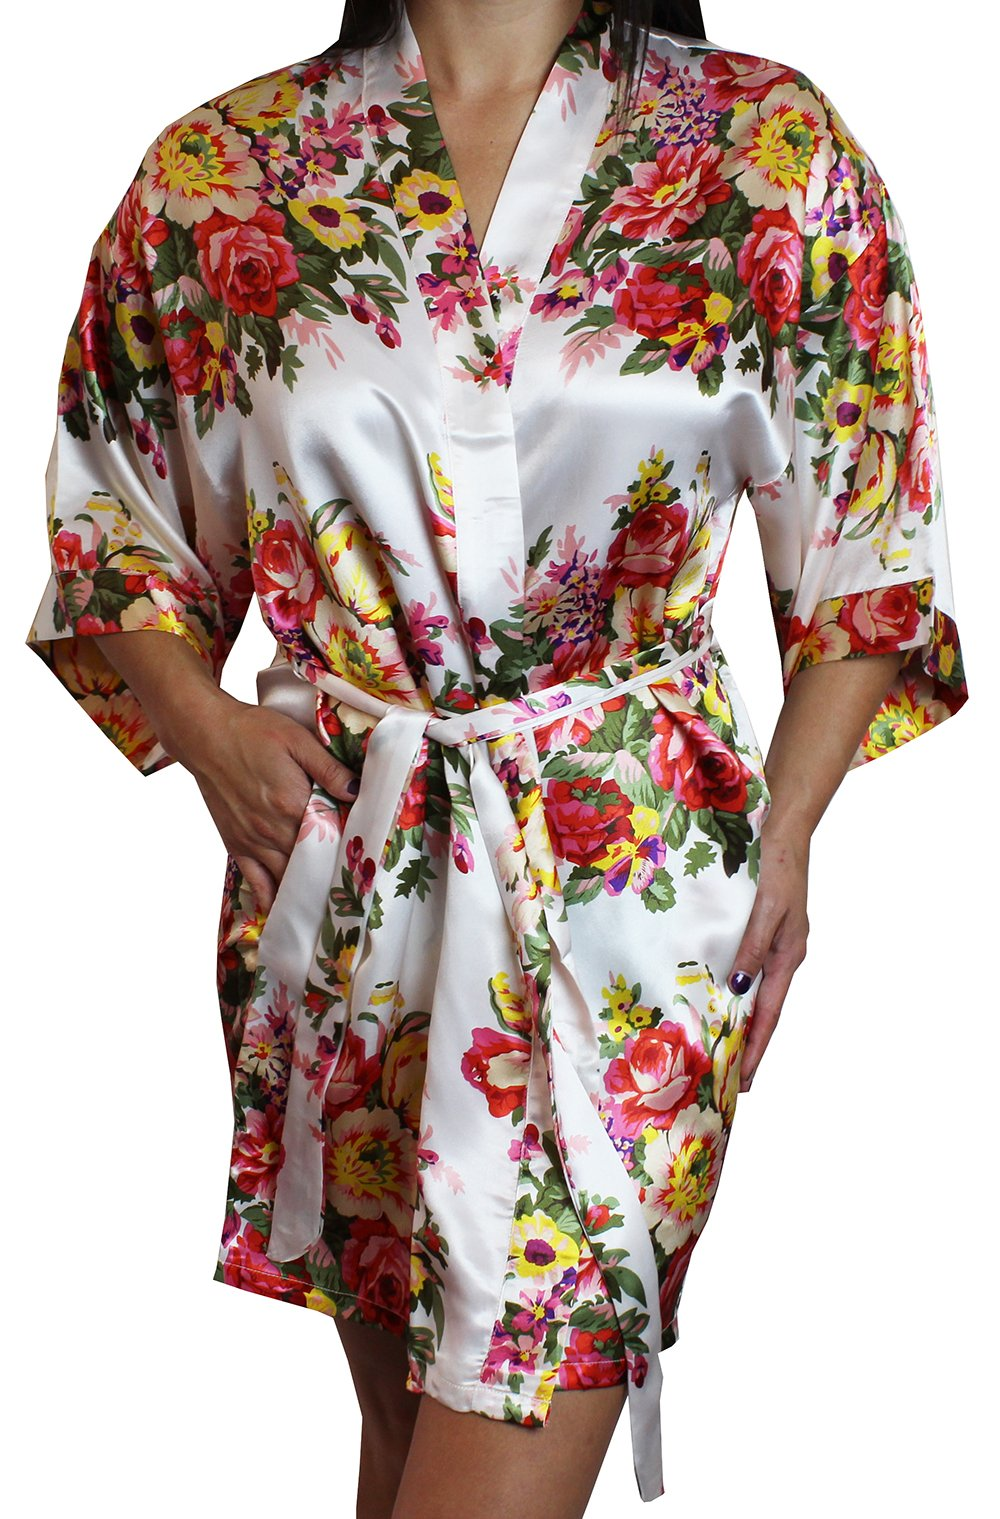 Ms Lovely Women's Satin Floral Kimono Short Bridesmaid Robe W/Pockets - White XS/S